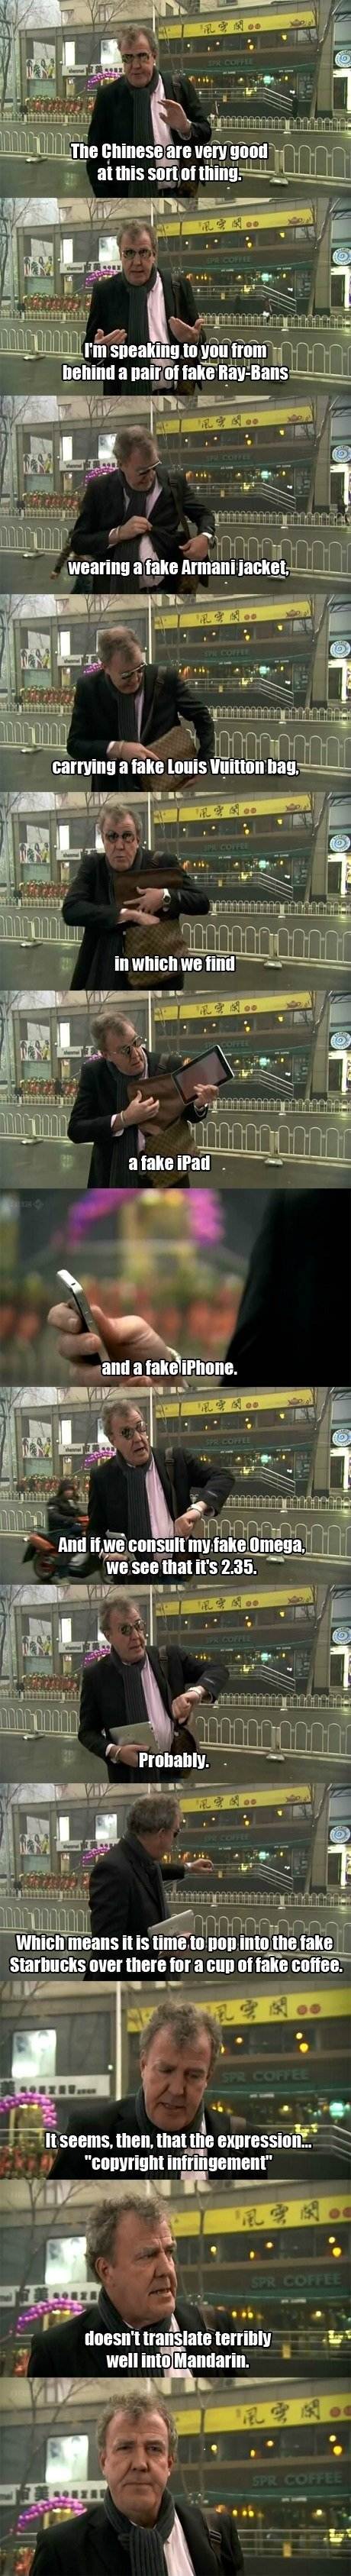 China is good at these things.jpg